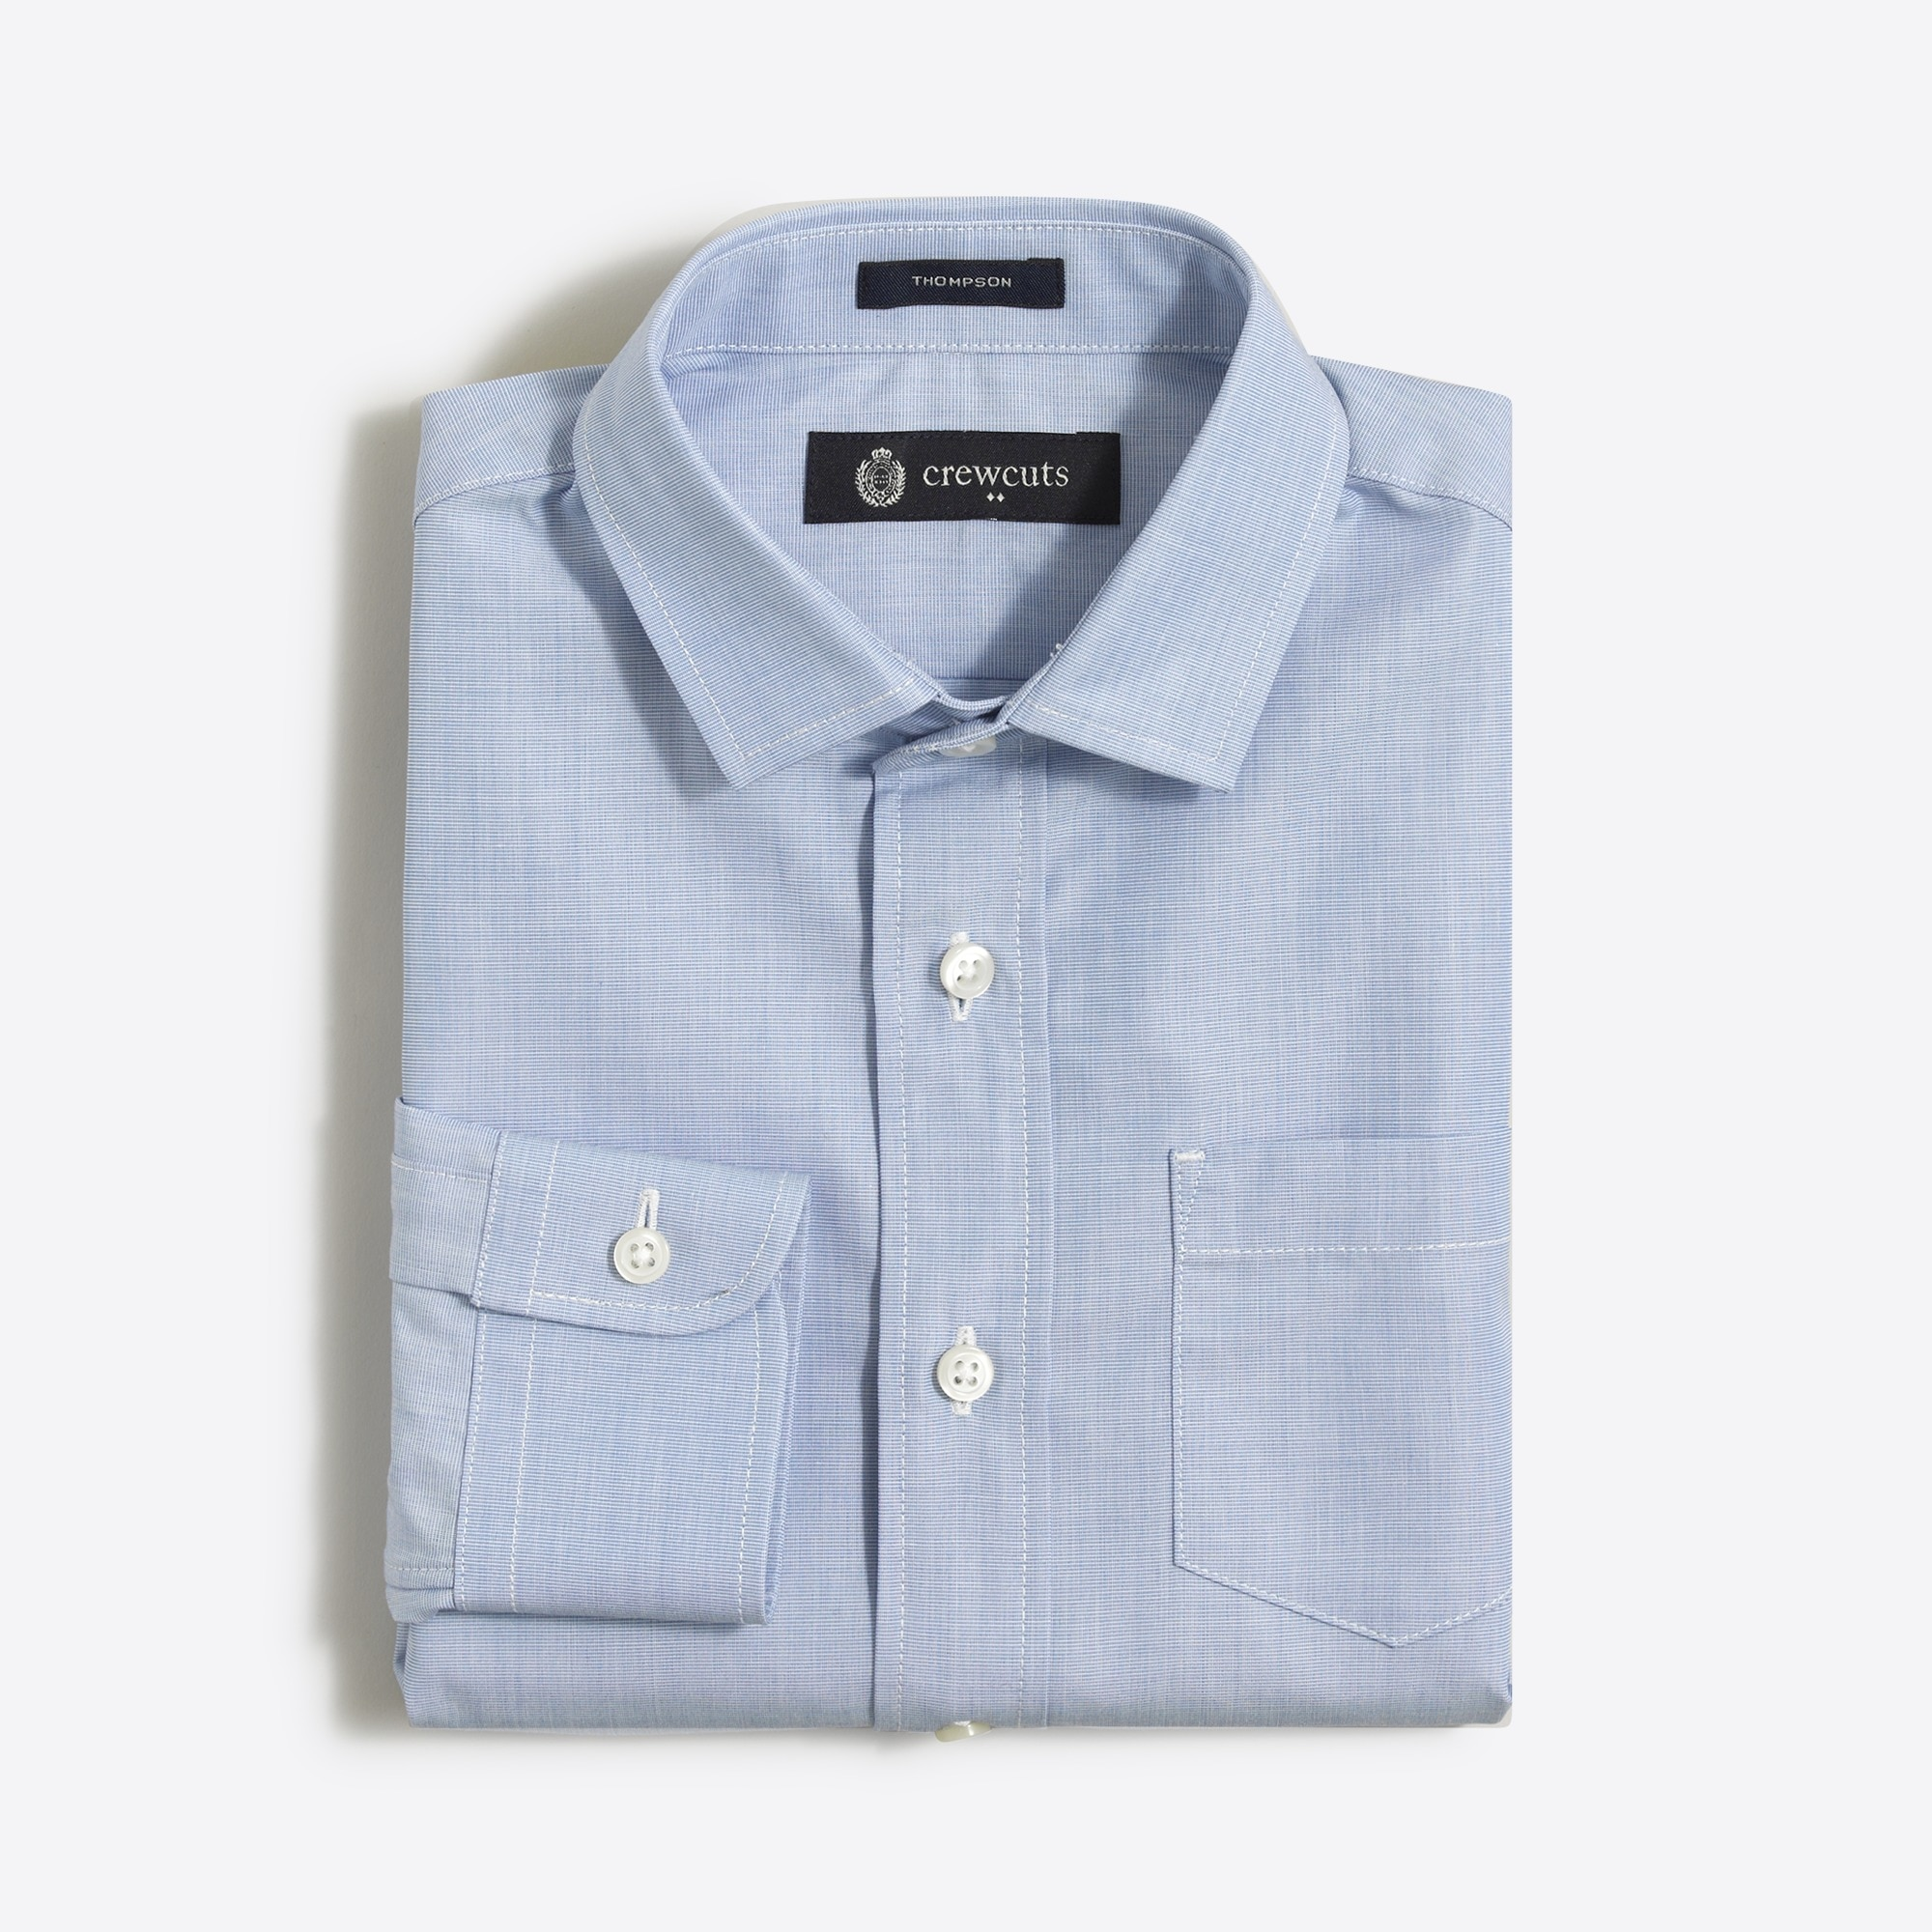 factory boys Boys' end-on-end Thompson dress shirt